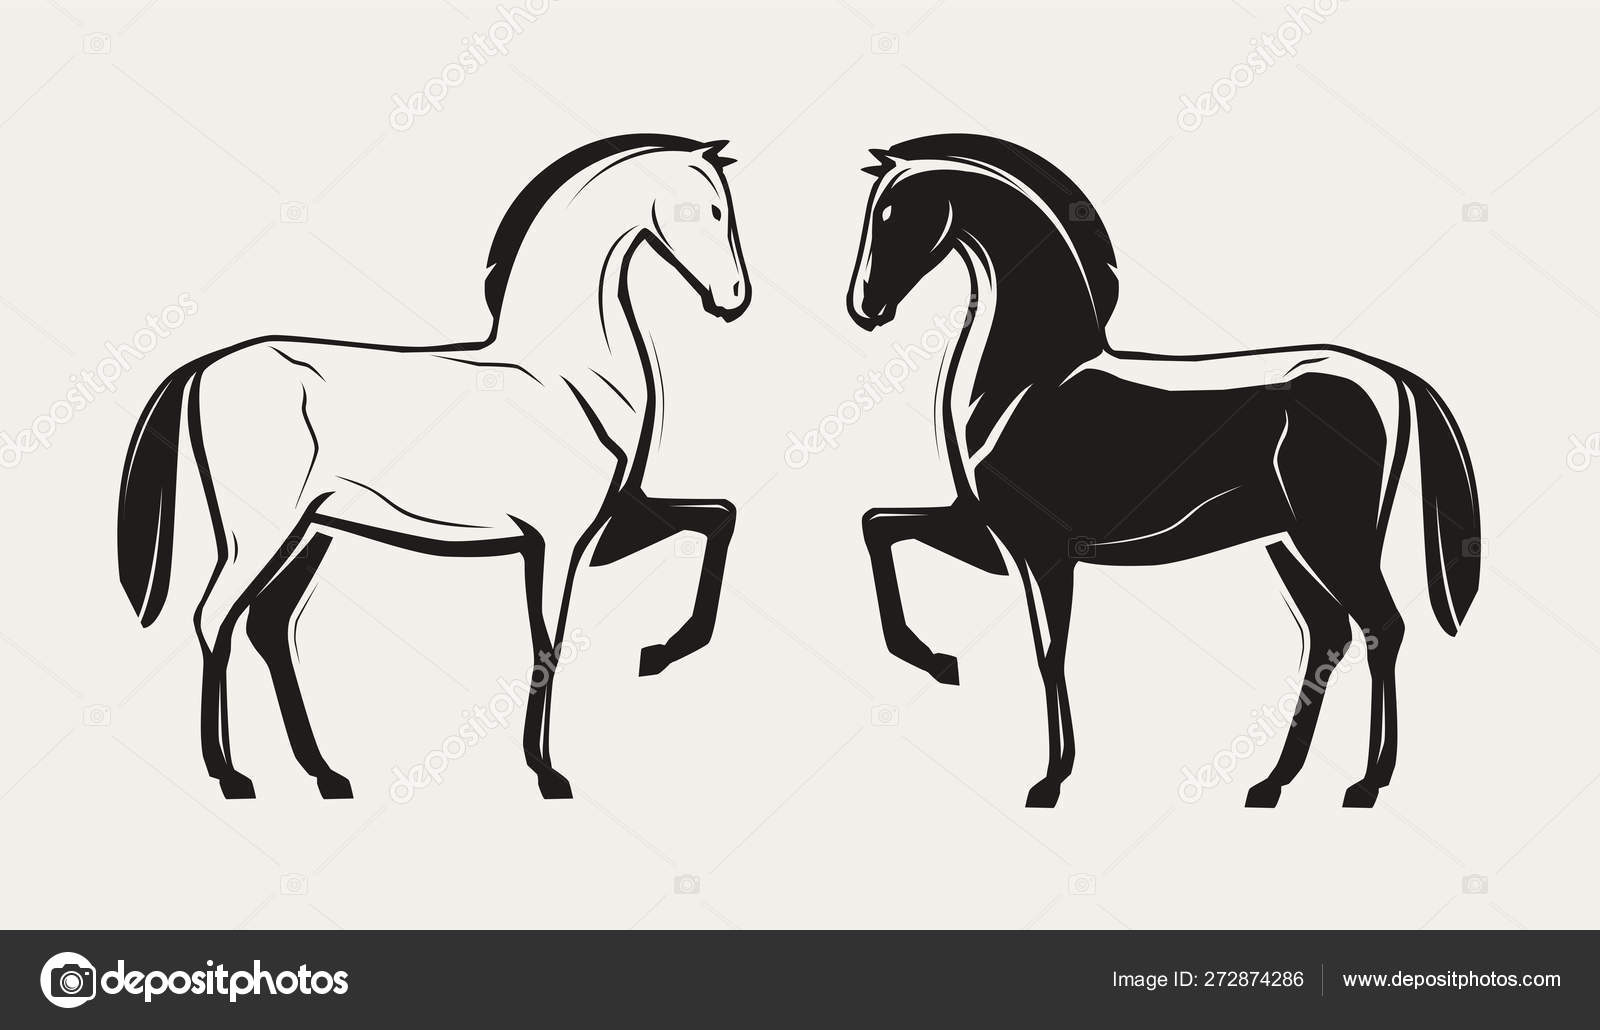 Silhouette Of A Standing Race Horse Vector Illustration Stock Vector C Sergeypykhonin 272874286